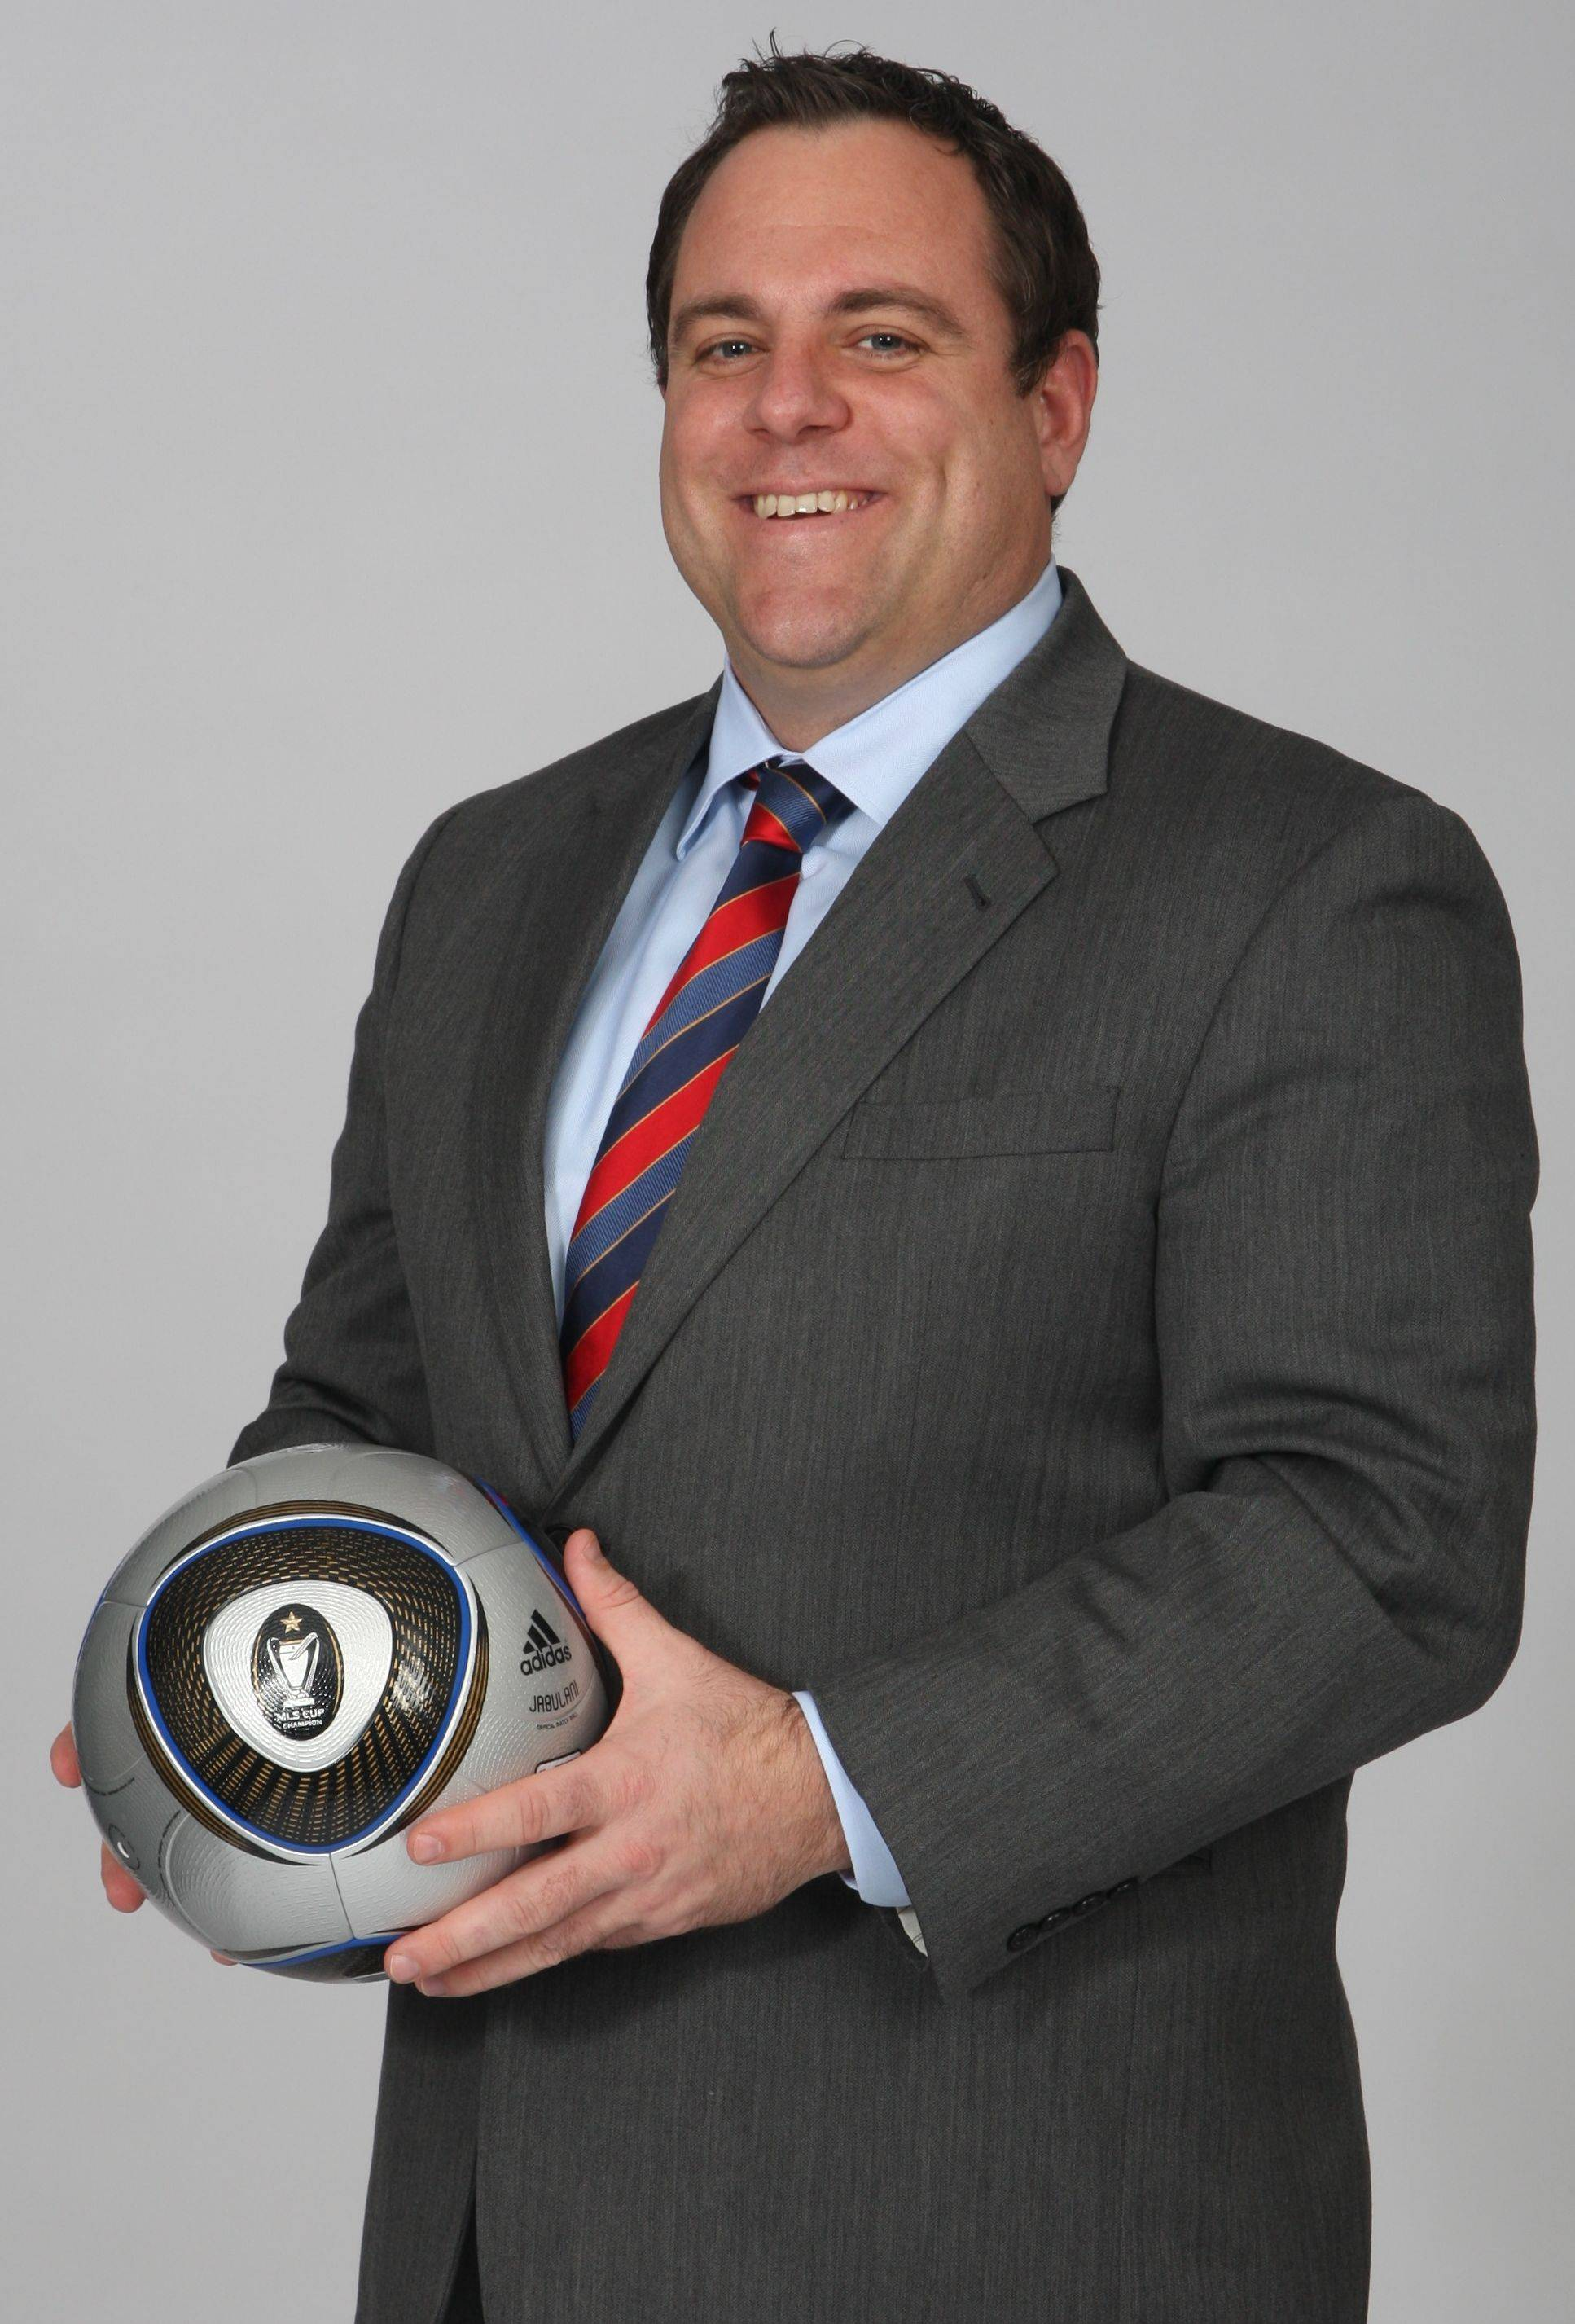 Real Salt Lake general manager and Elmhurst native Garth Lagerwey joined the club after a successful career as a lawyer and soccer player.